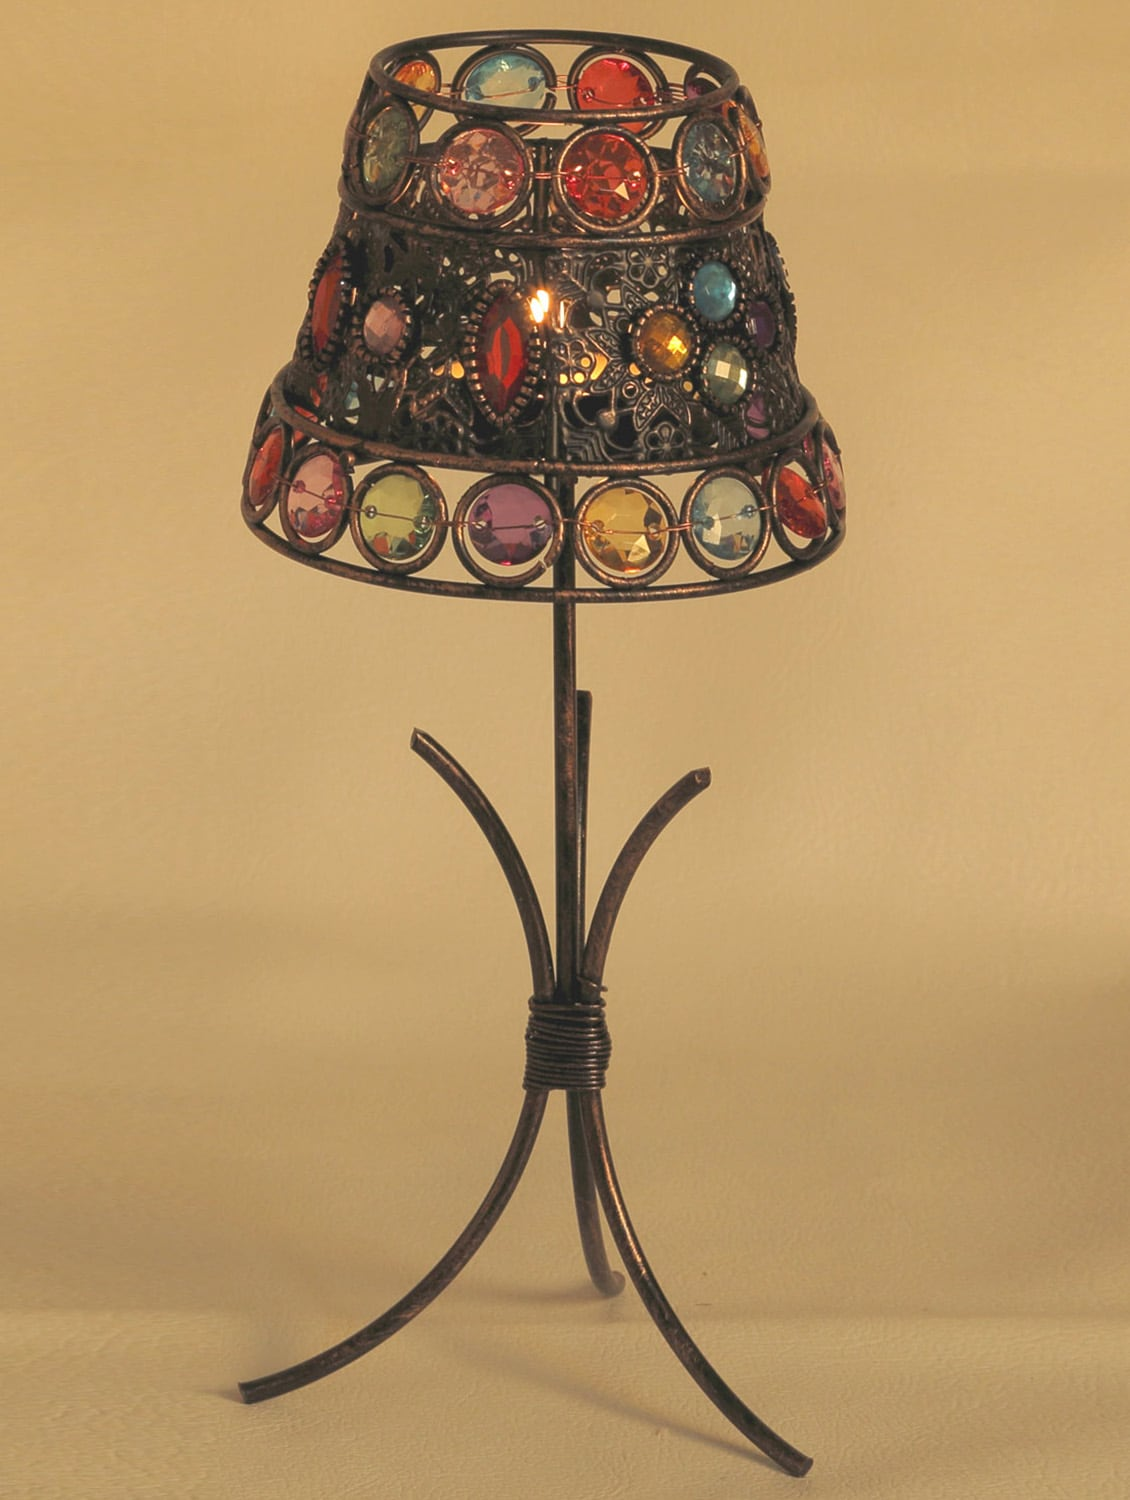 Lamp Shade Tea Light Holder With Color Glass Holders - Aapno Rajasthan